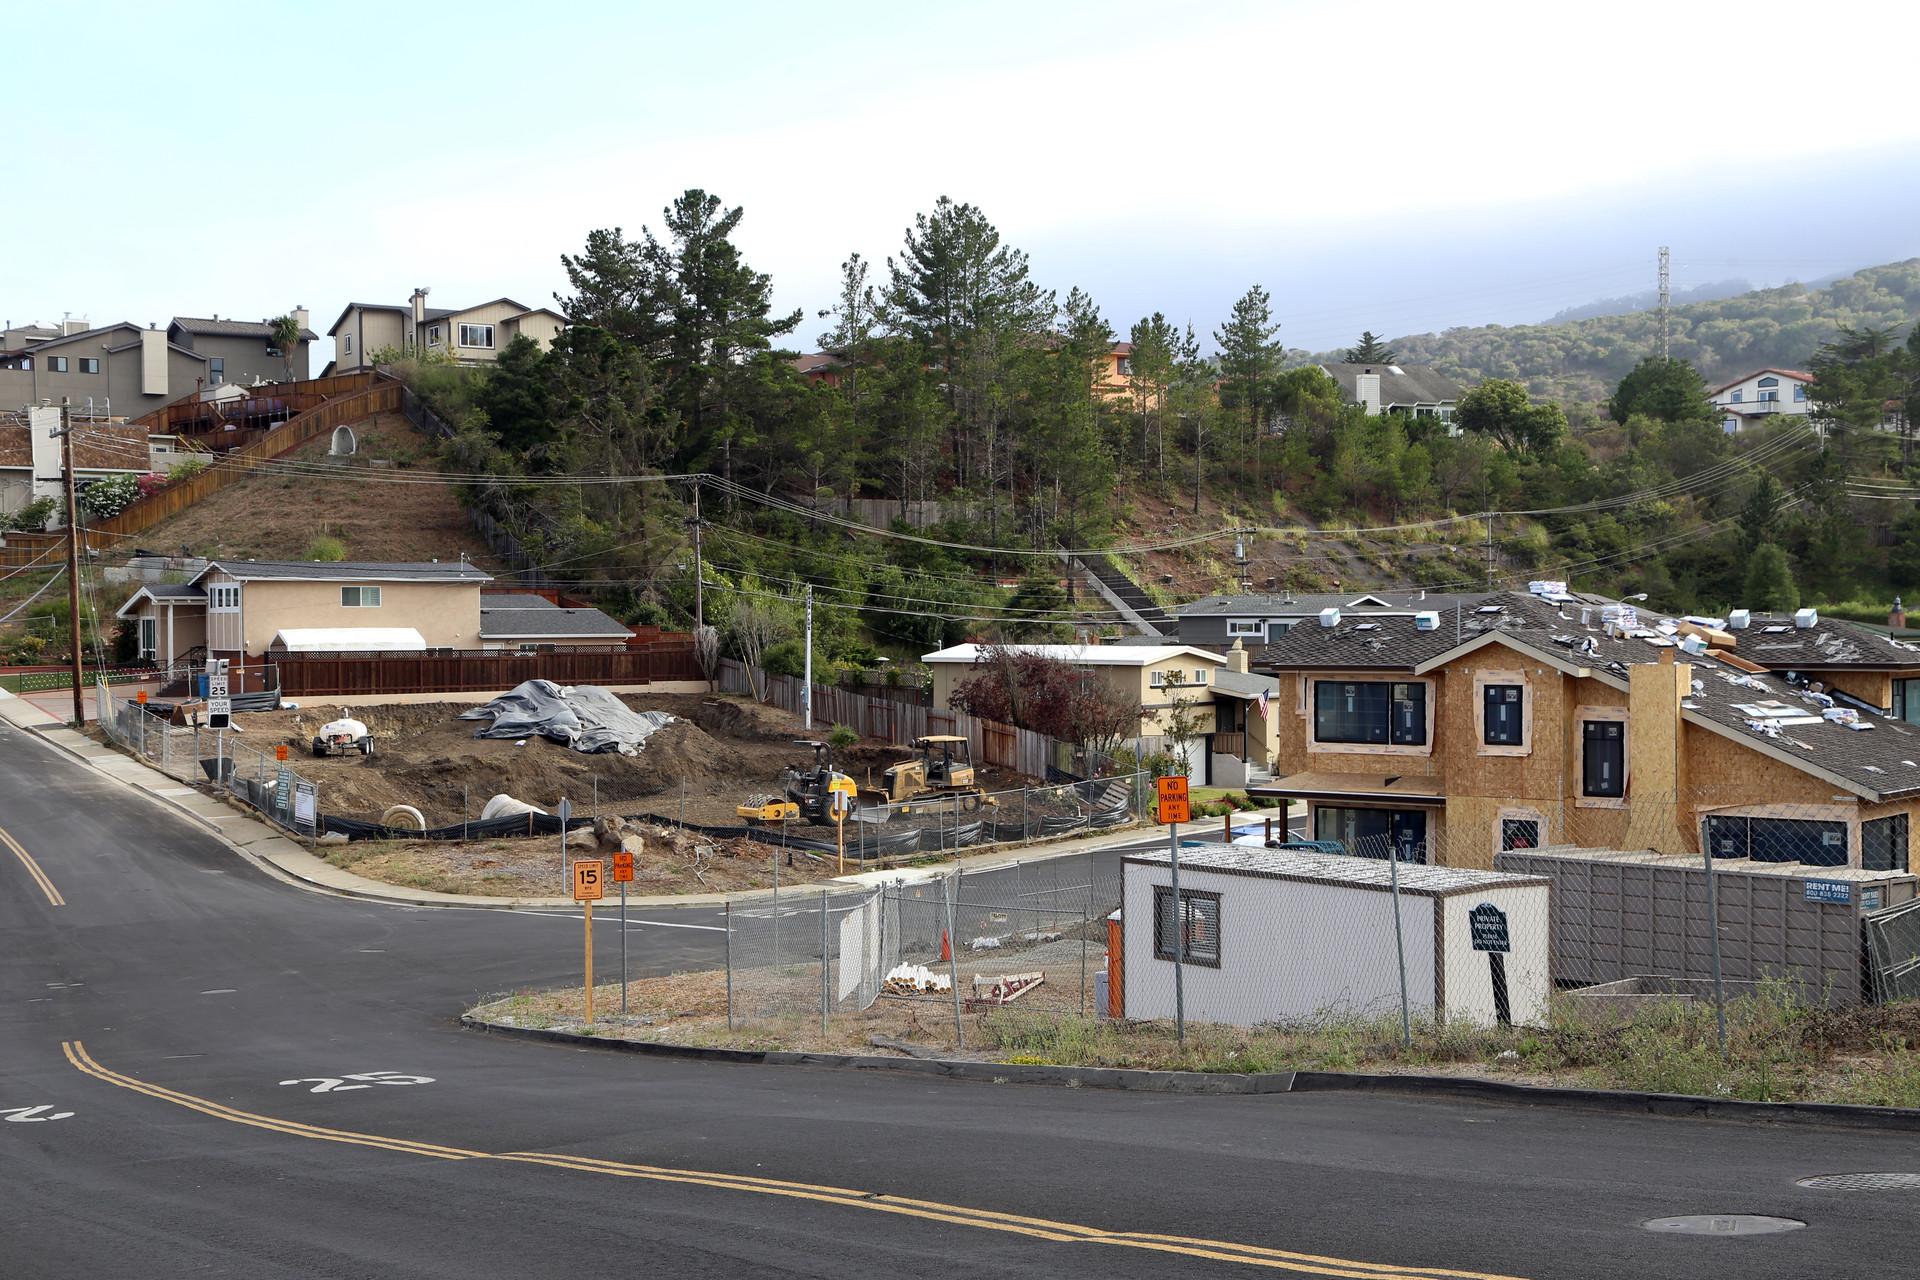 The Crestmoor neighborhood is still rebuilding, five years after the pipeline explosion.